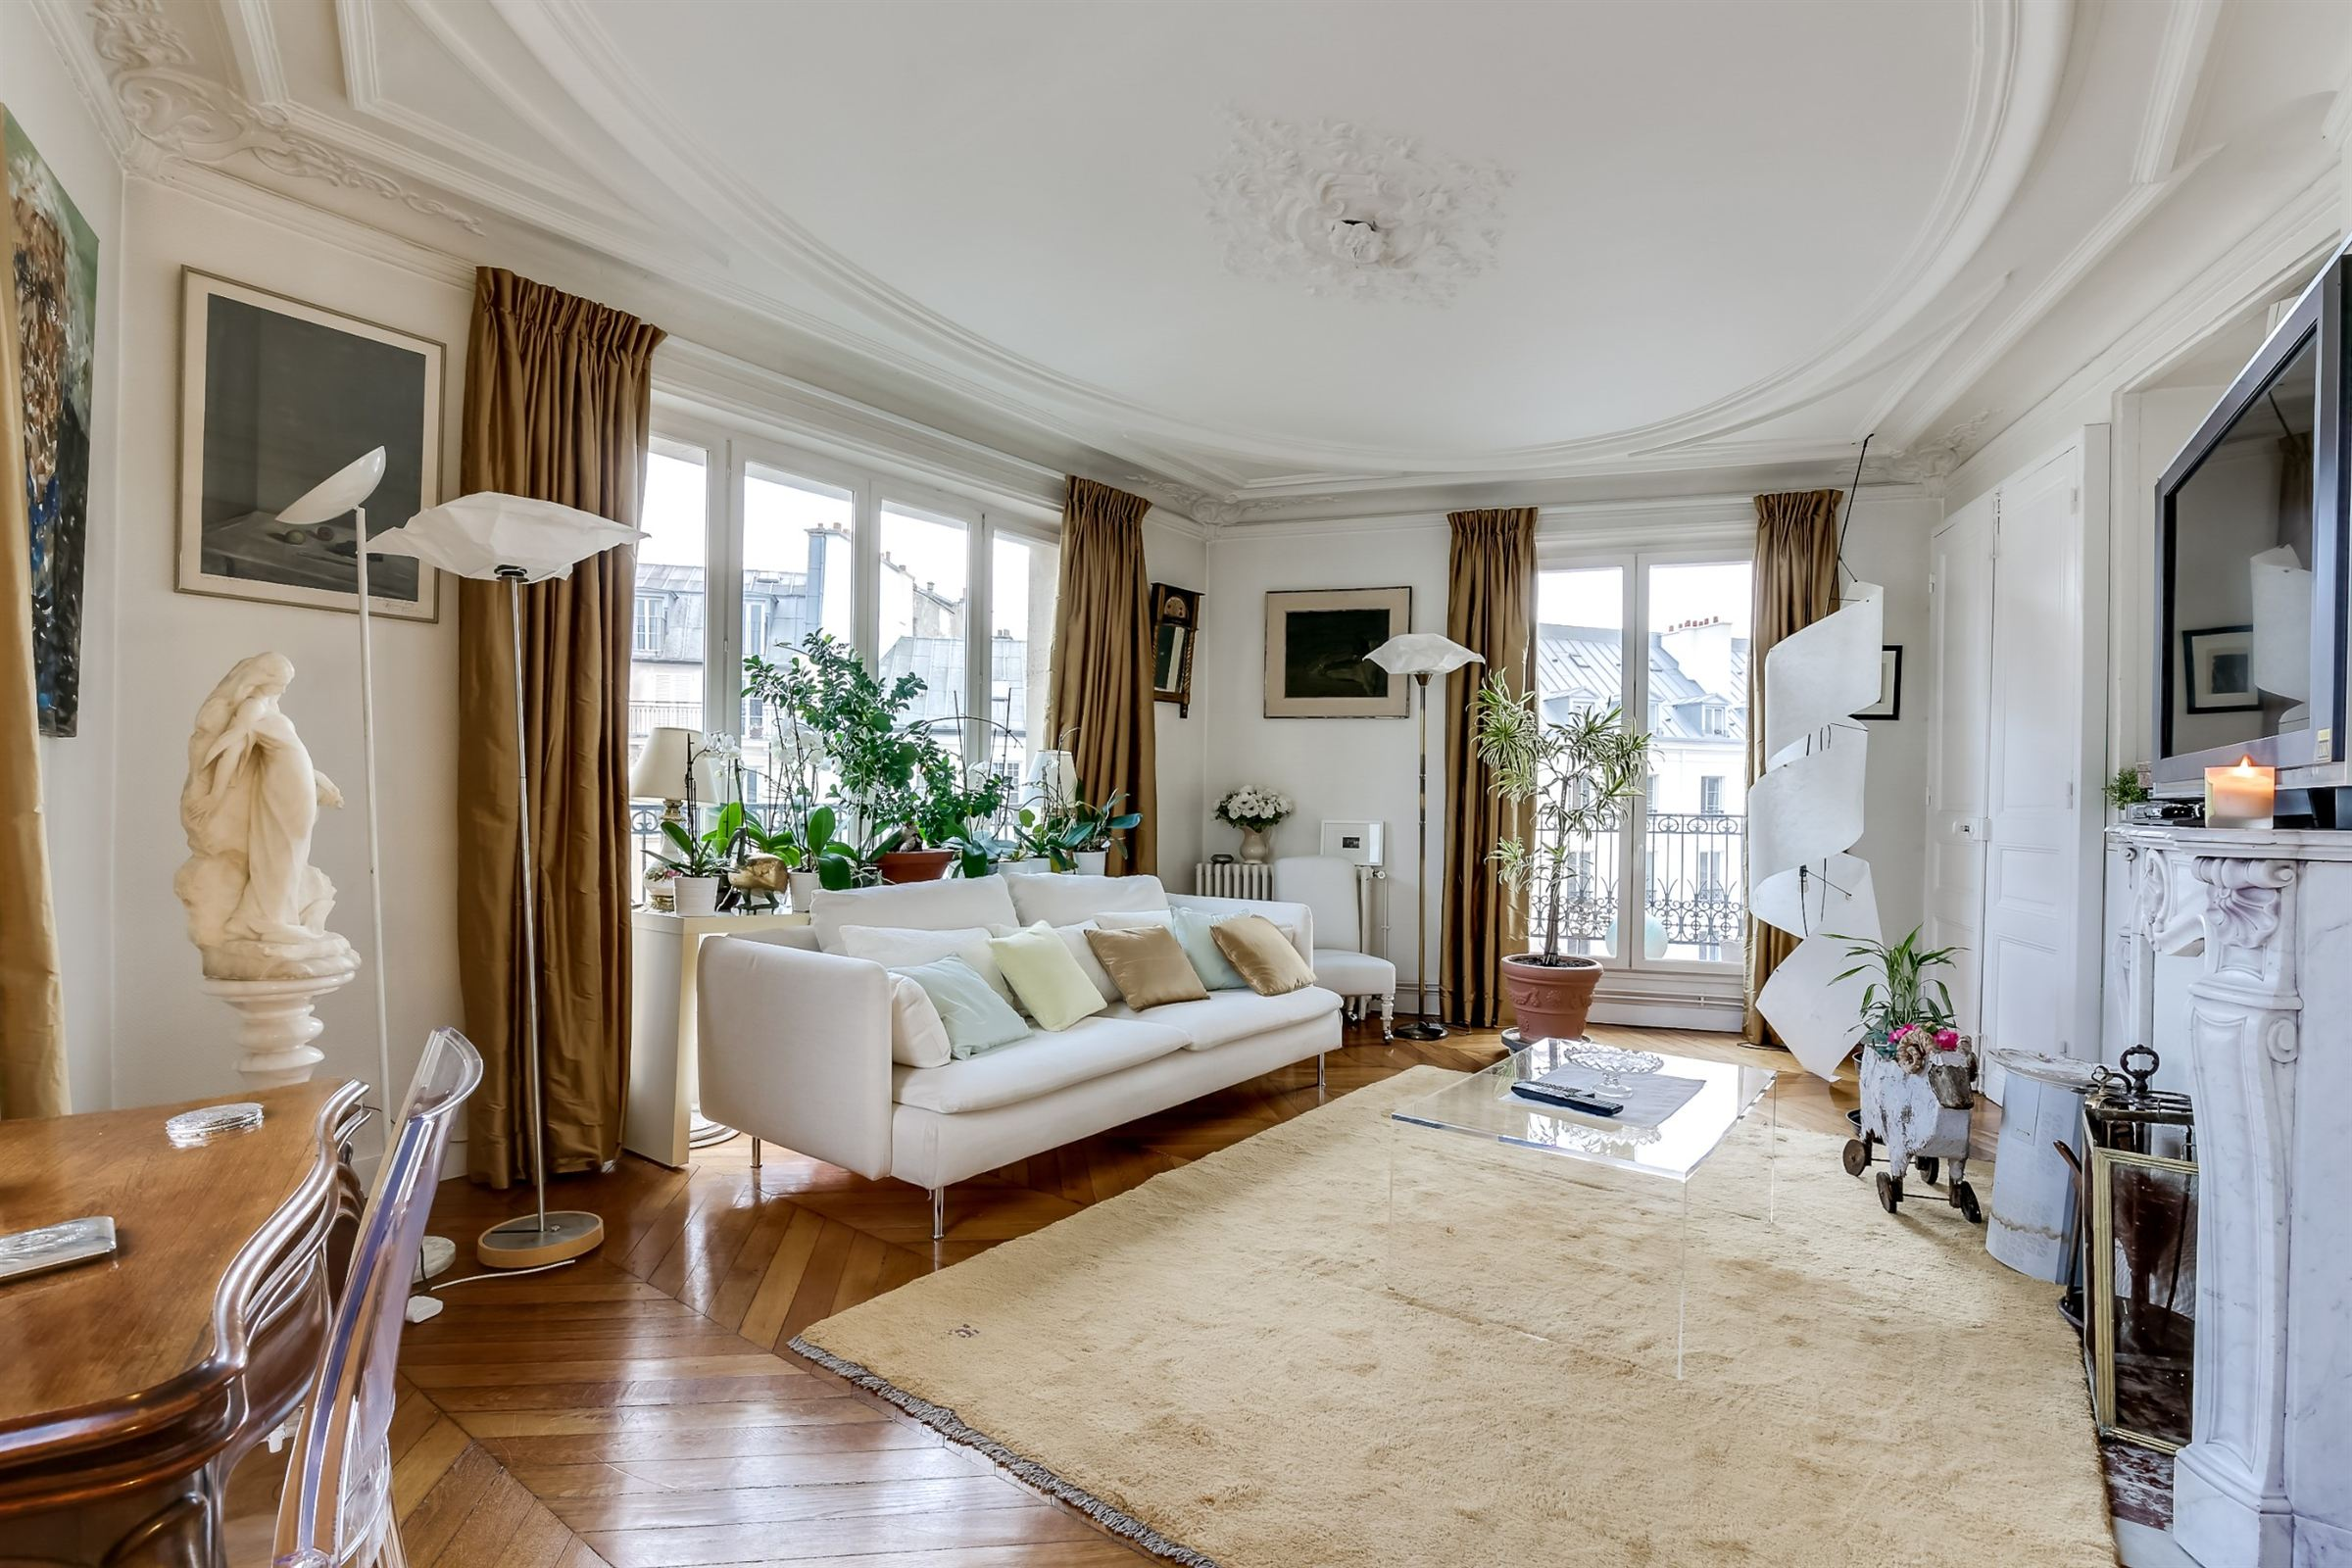 Property For Sale at Paris 3 - Haut Marais. A 4 rooms apartment, bright property